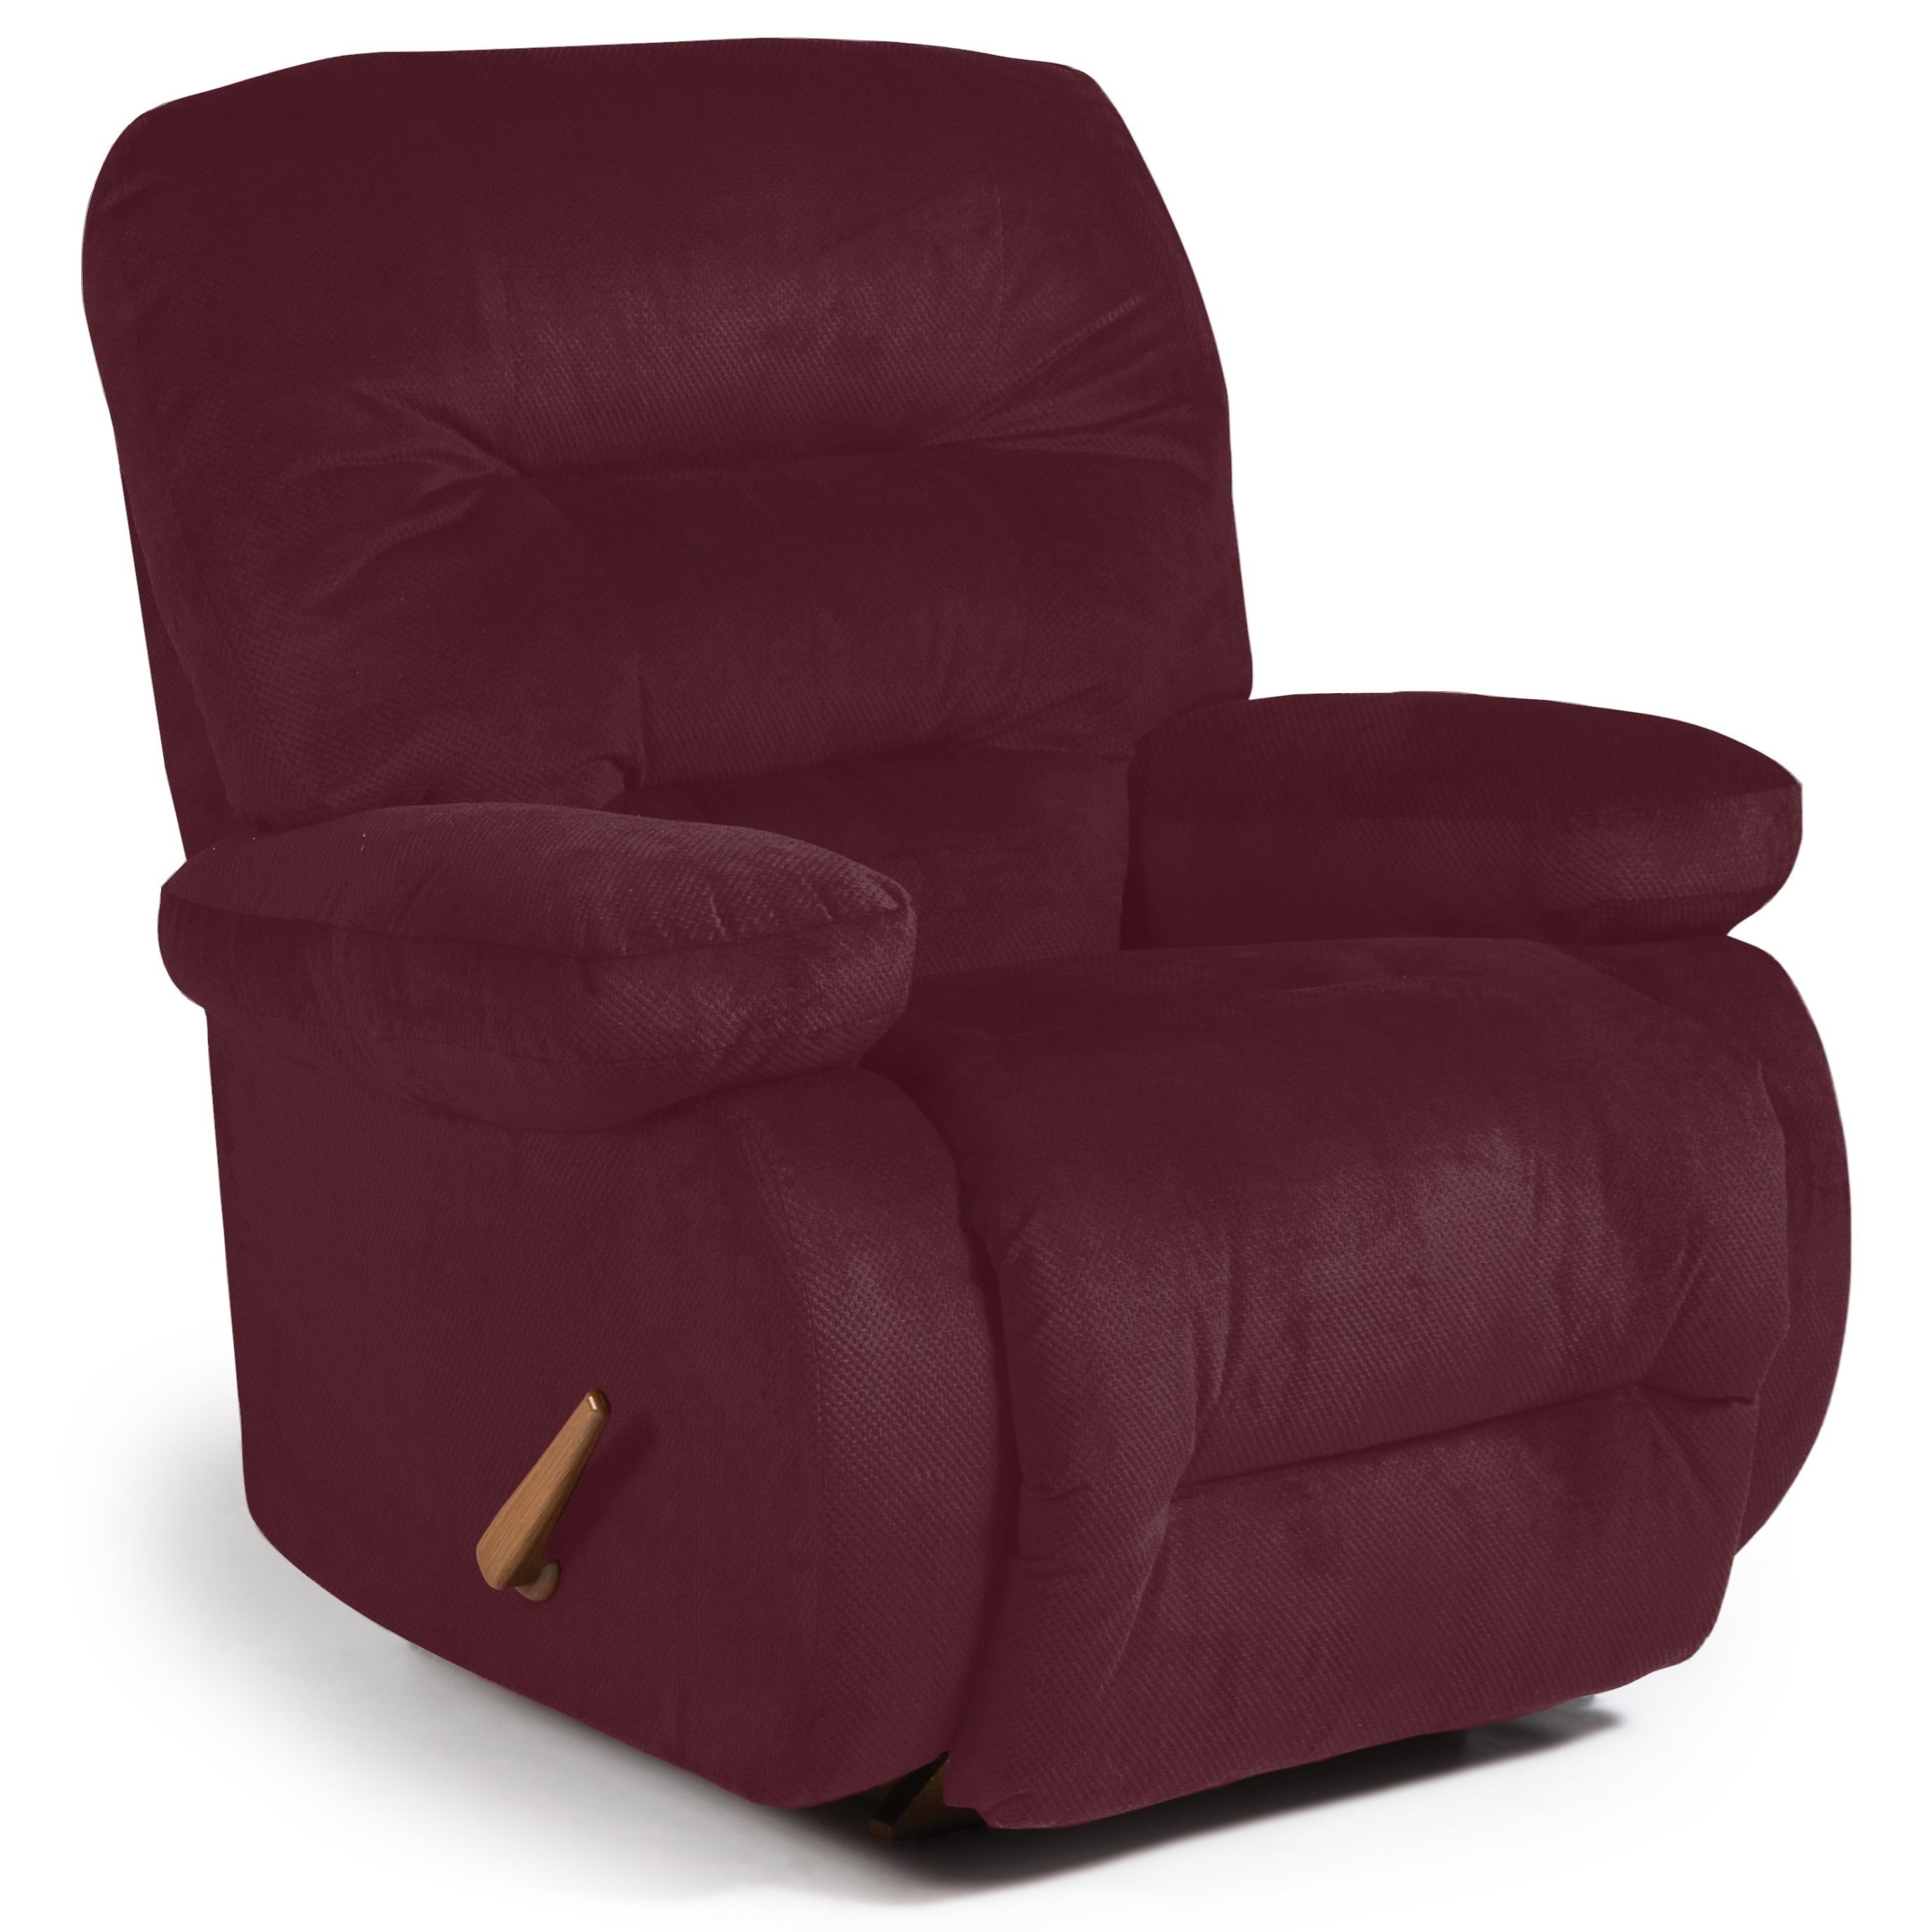 Medium Recliners Maddox Space Saver Recliner by Best Home Furnishings at Best Home Furnishings